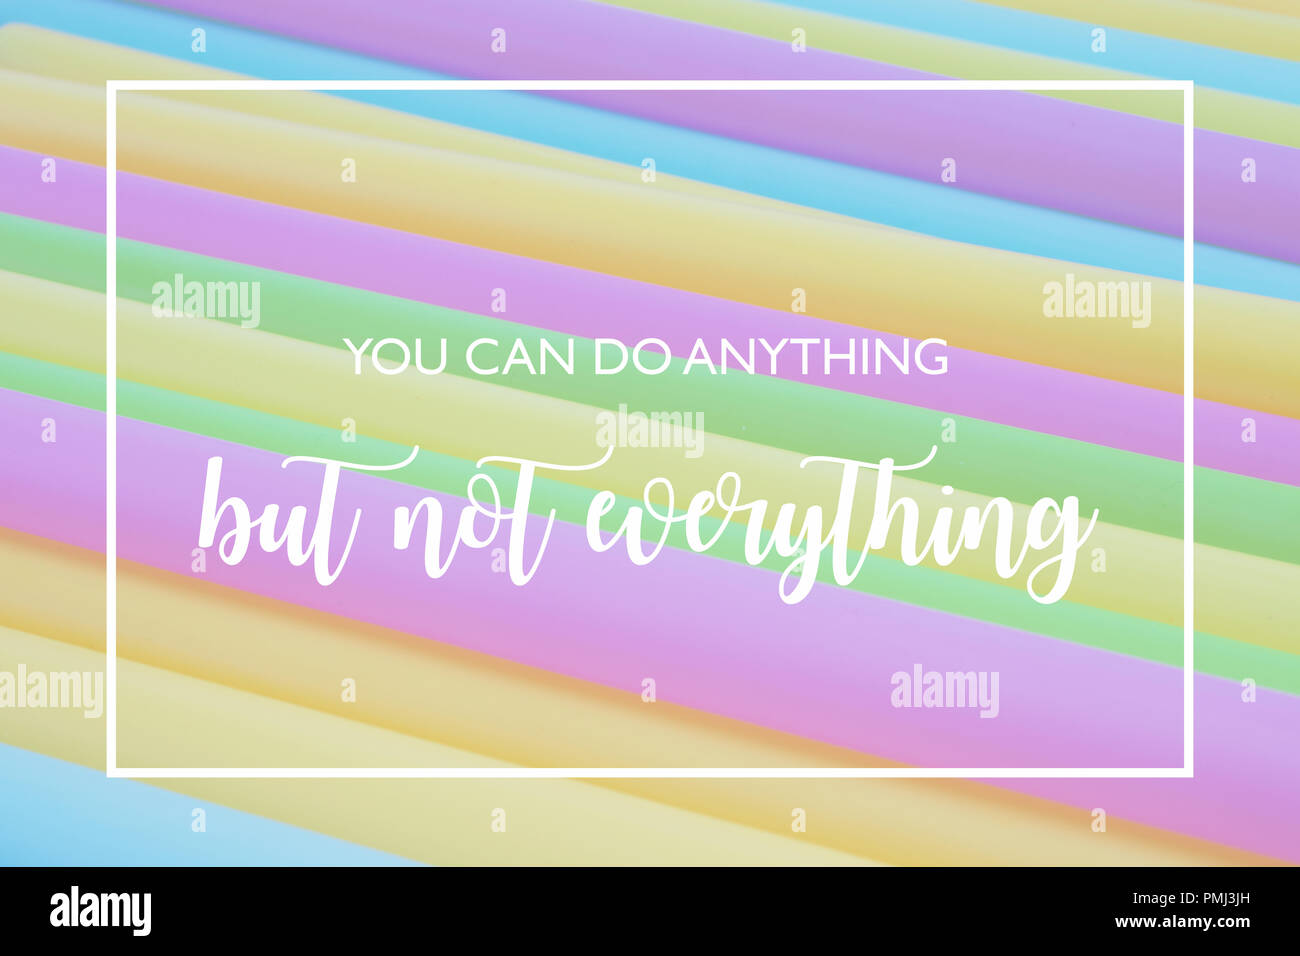 You can do anything but not everything - motivational quote on stripes - Stock Image